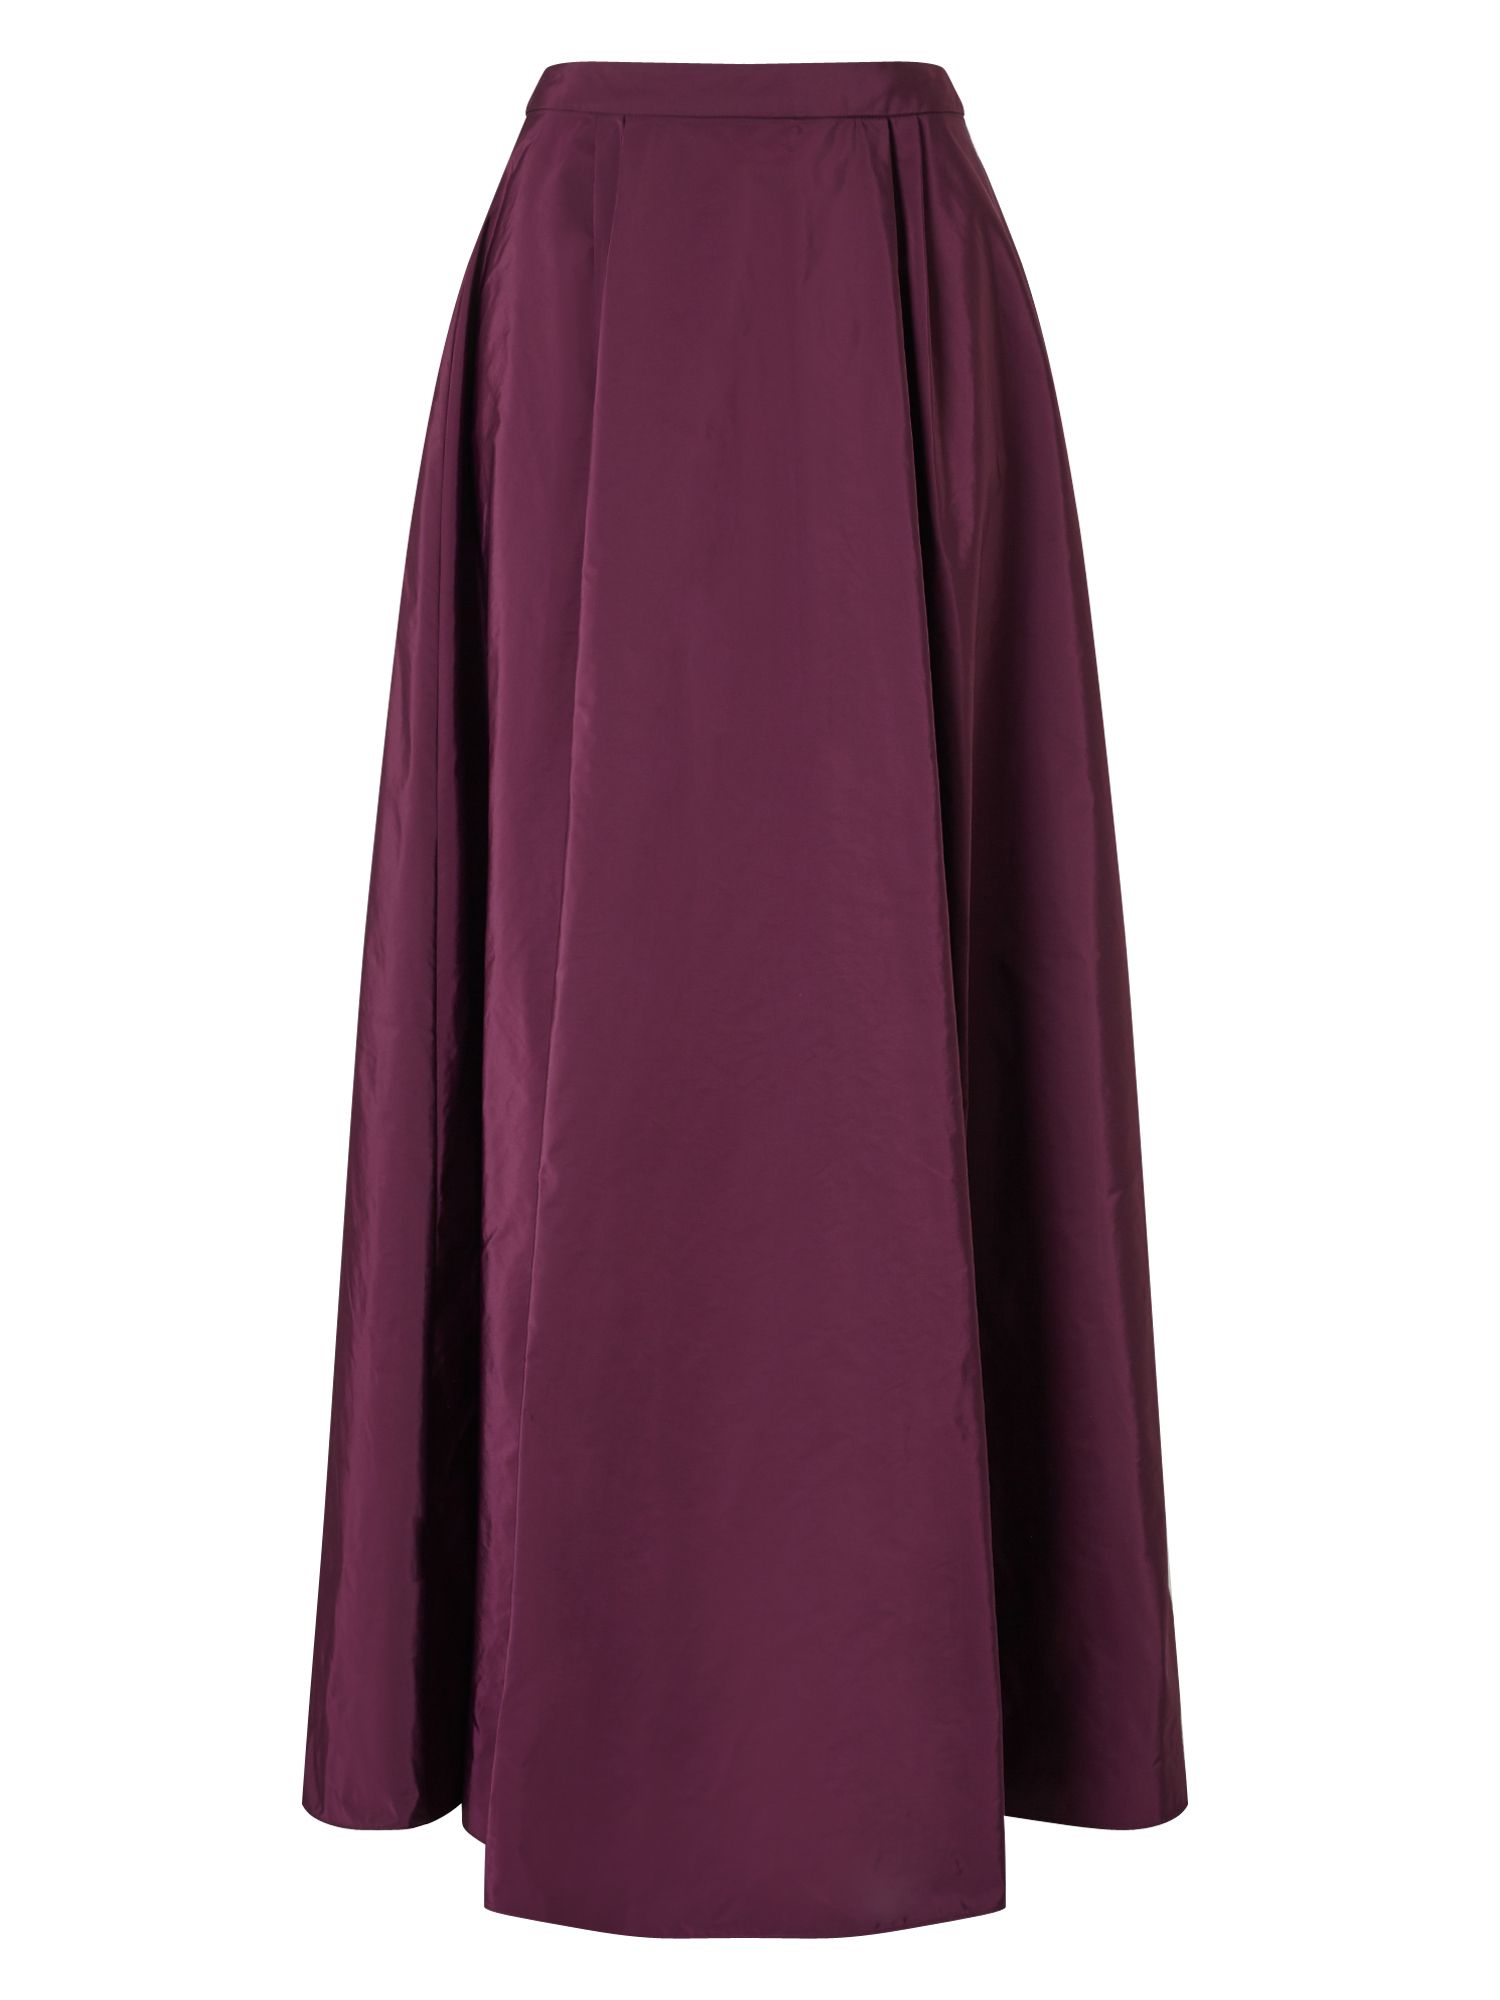 Jacques Vert Sadie Taffeta Maxi Skirt, Dark Purple